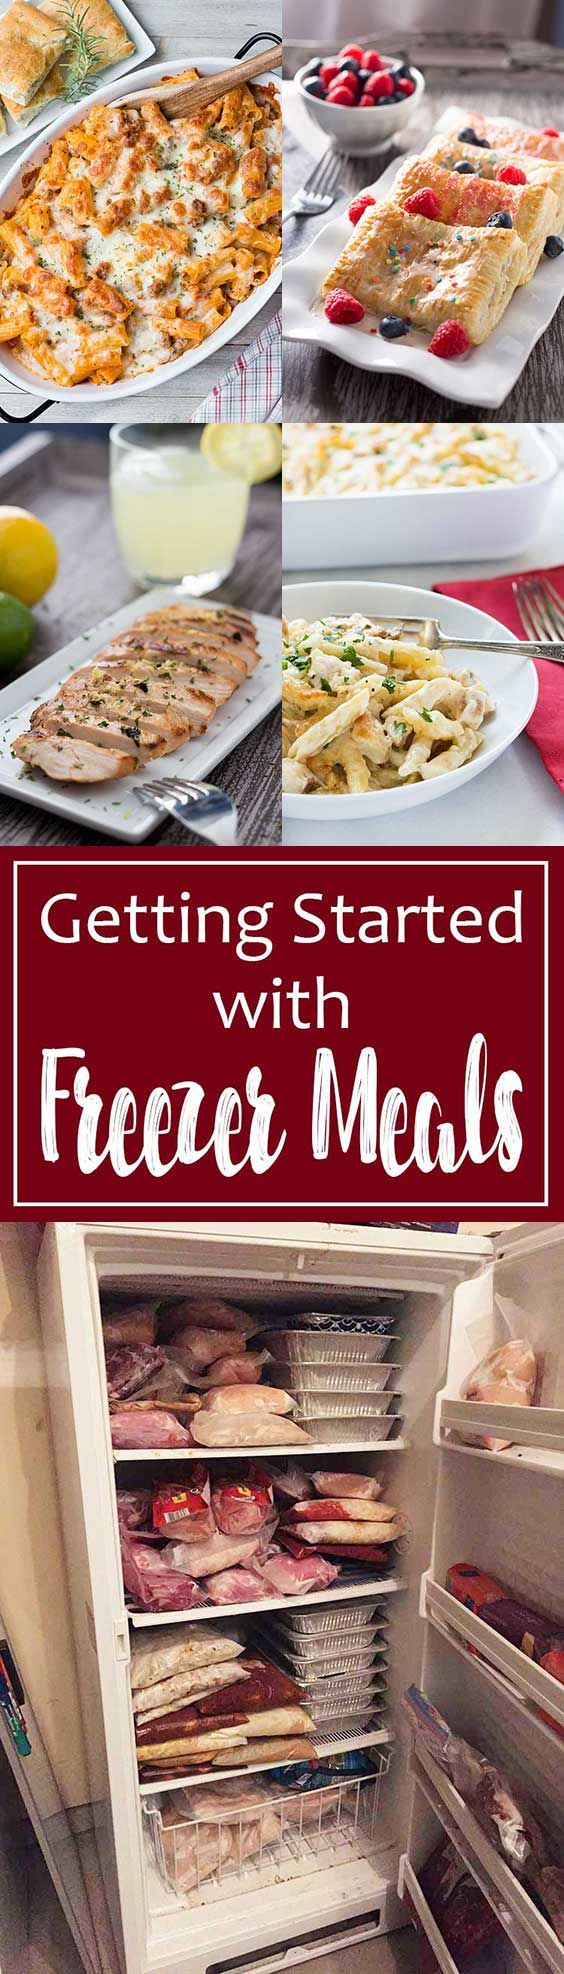 Getting Started with Freezer Meals | Freezer meals can help you save time and money (and your sanity) in the kitchen! Let me share with you what I've learned over the last 14 years of doing freezer meals, so you can get started doing freezer meals too! #freezermeals #makeahead #freezerfriendly #easydinner